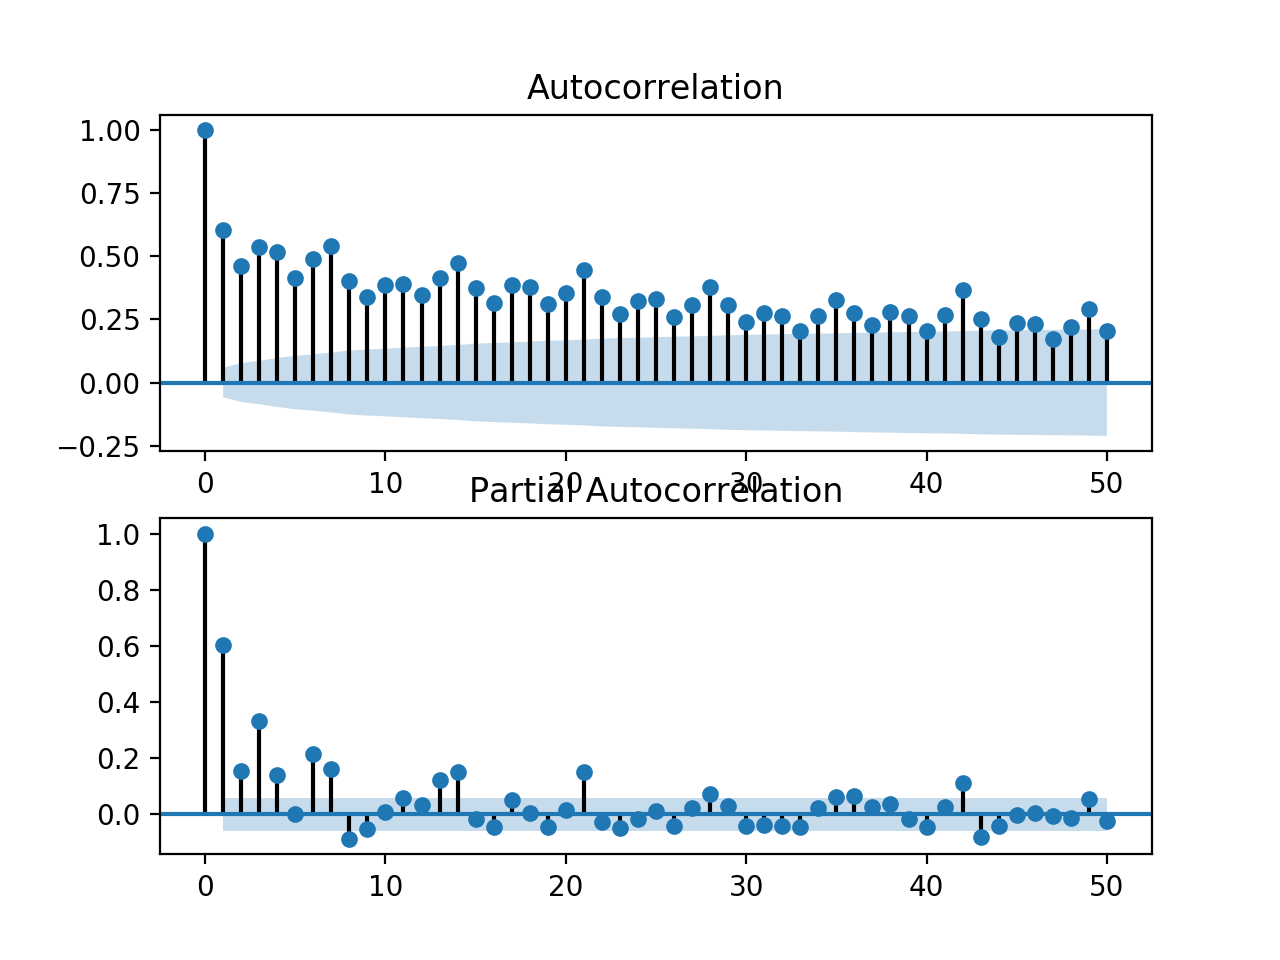 Zoomed in ACF and PACF plots for the univariate series of power consumption